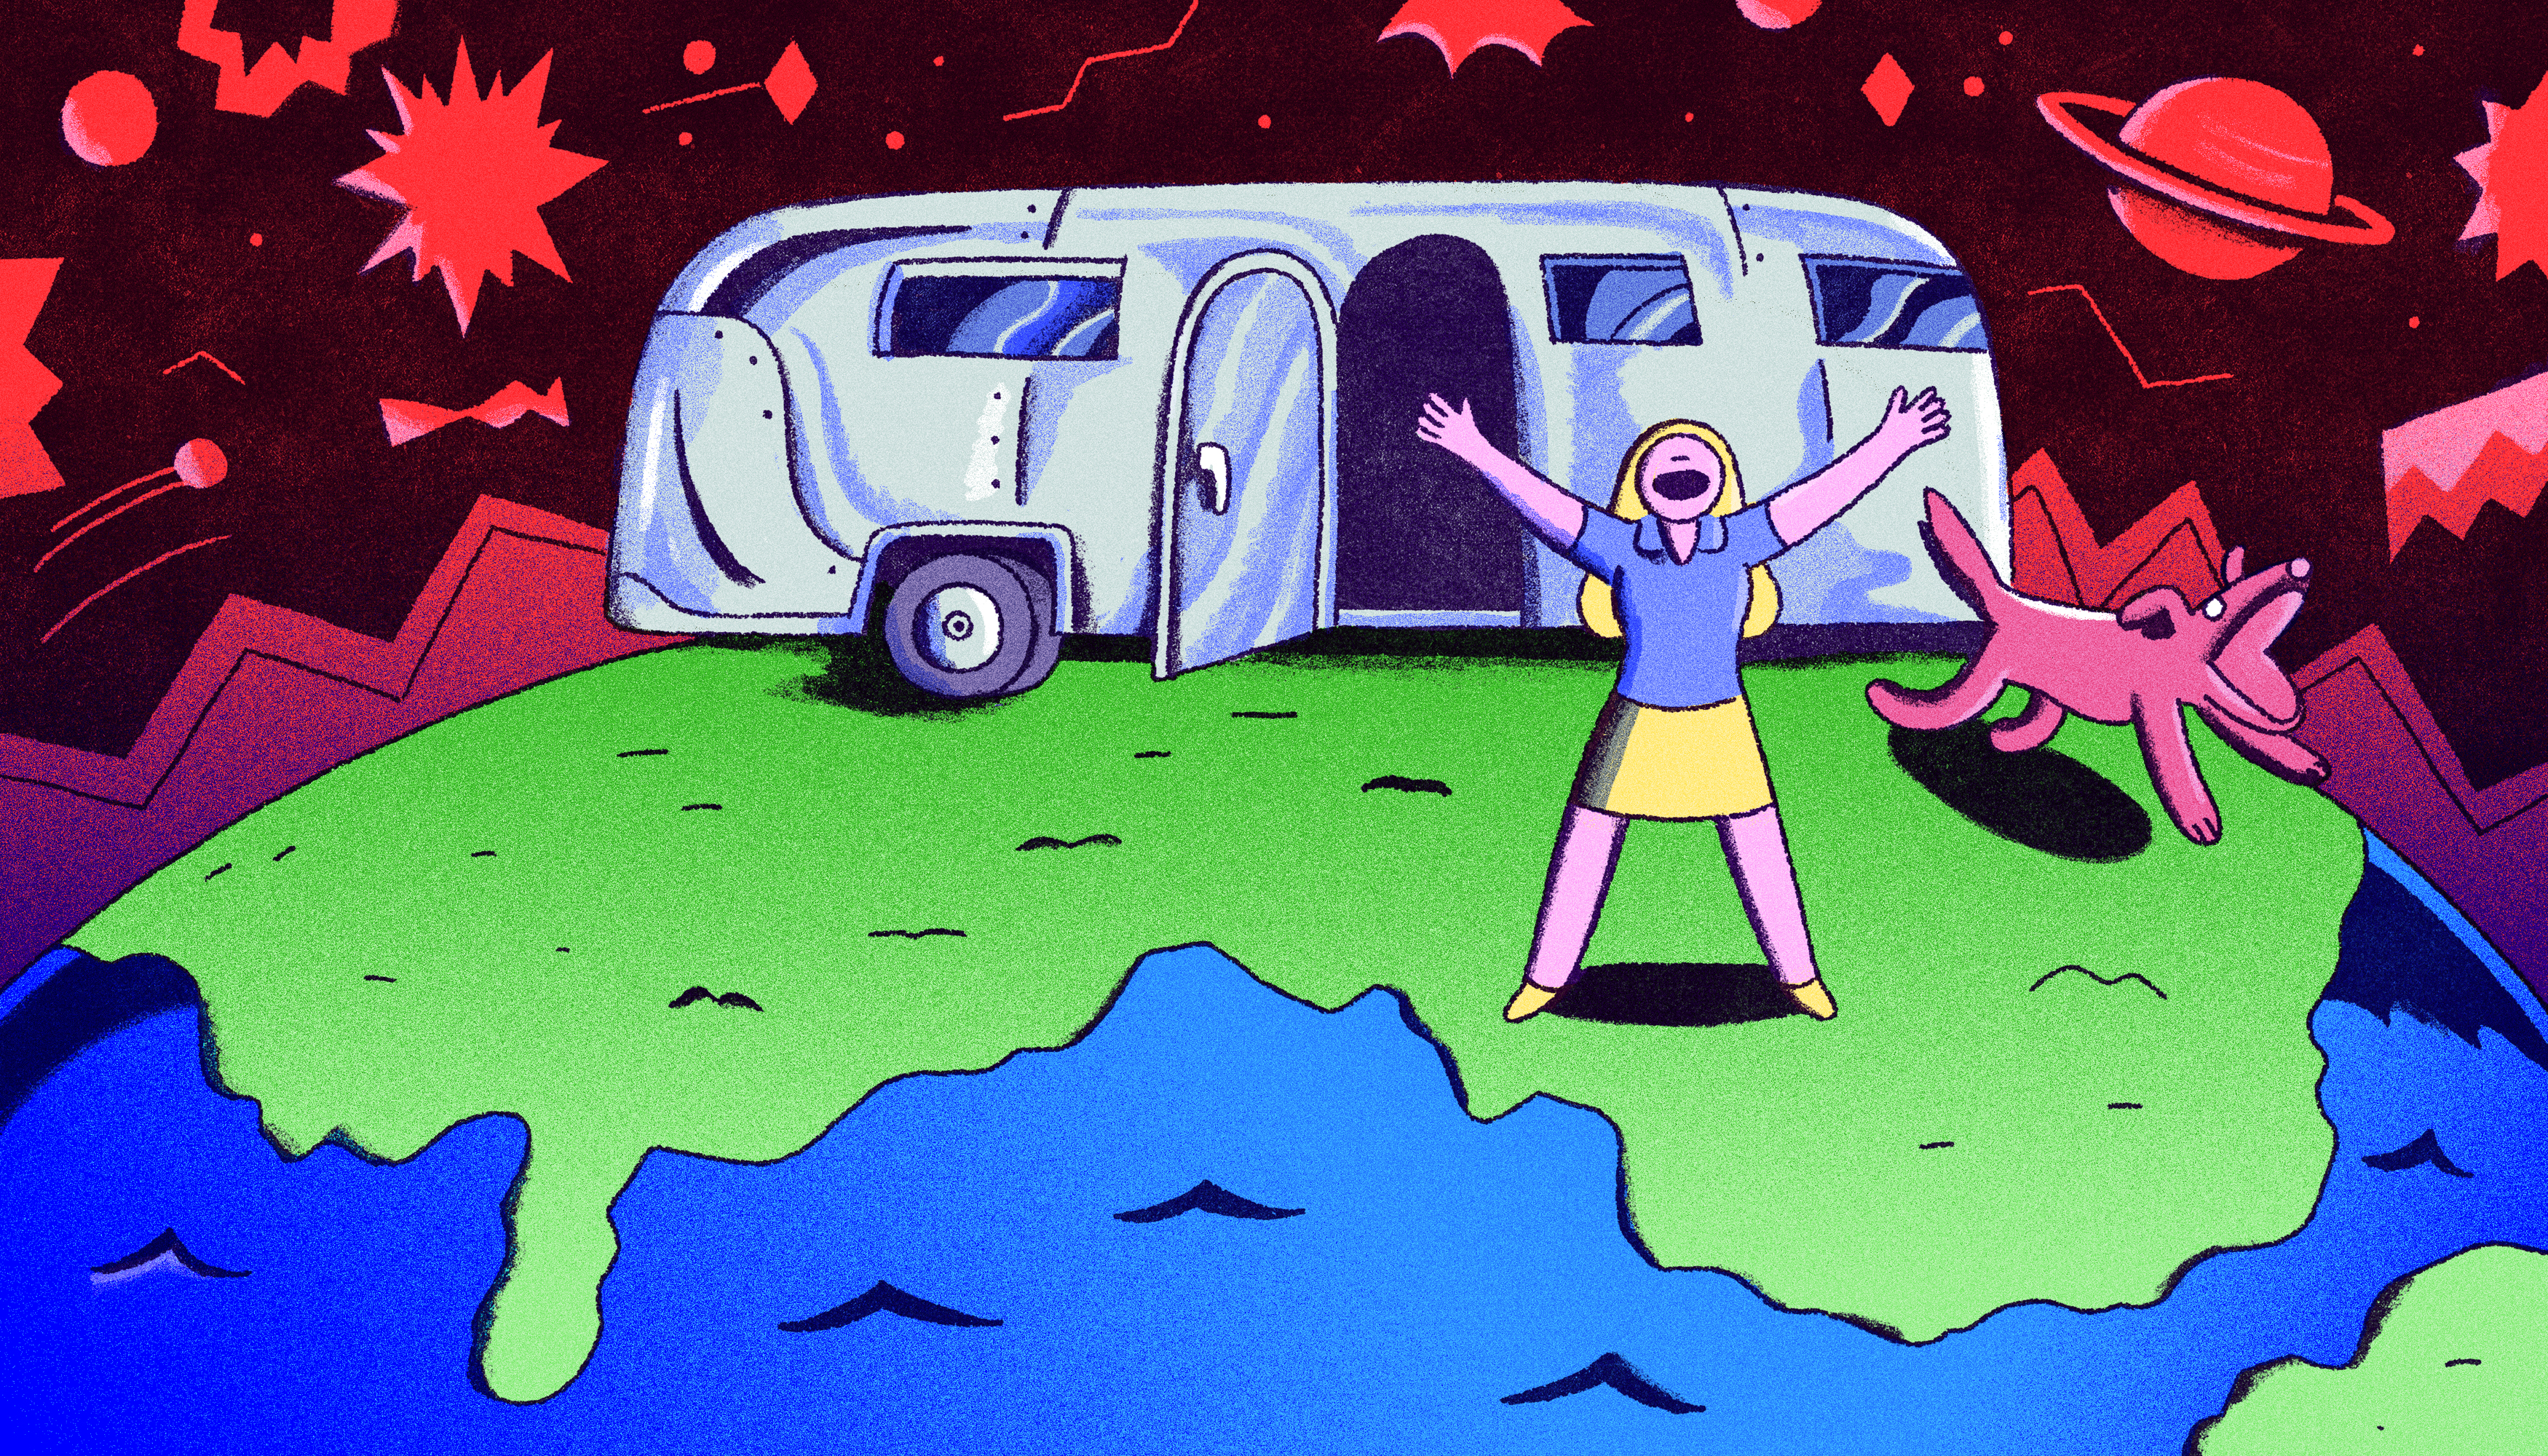 A woman happily throws her arms in the air outside of the front door of her metallic airstream camper. The world is her front yard and she exudes a sense of freedom. Illustration.